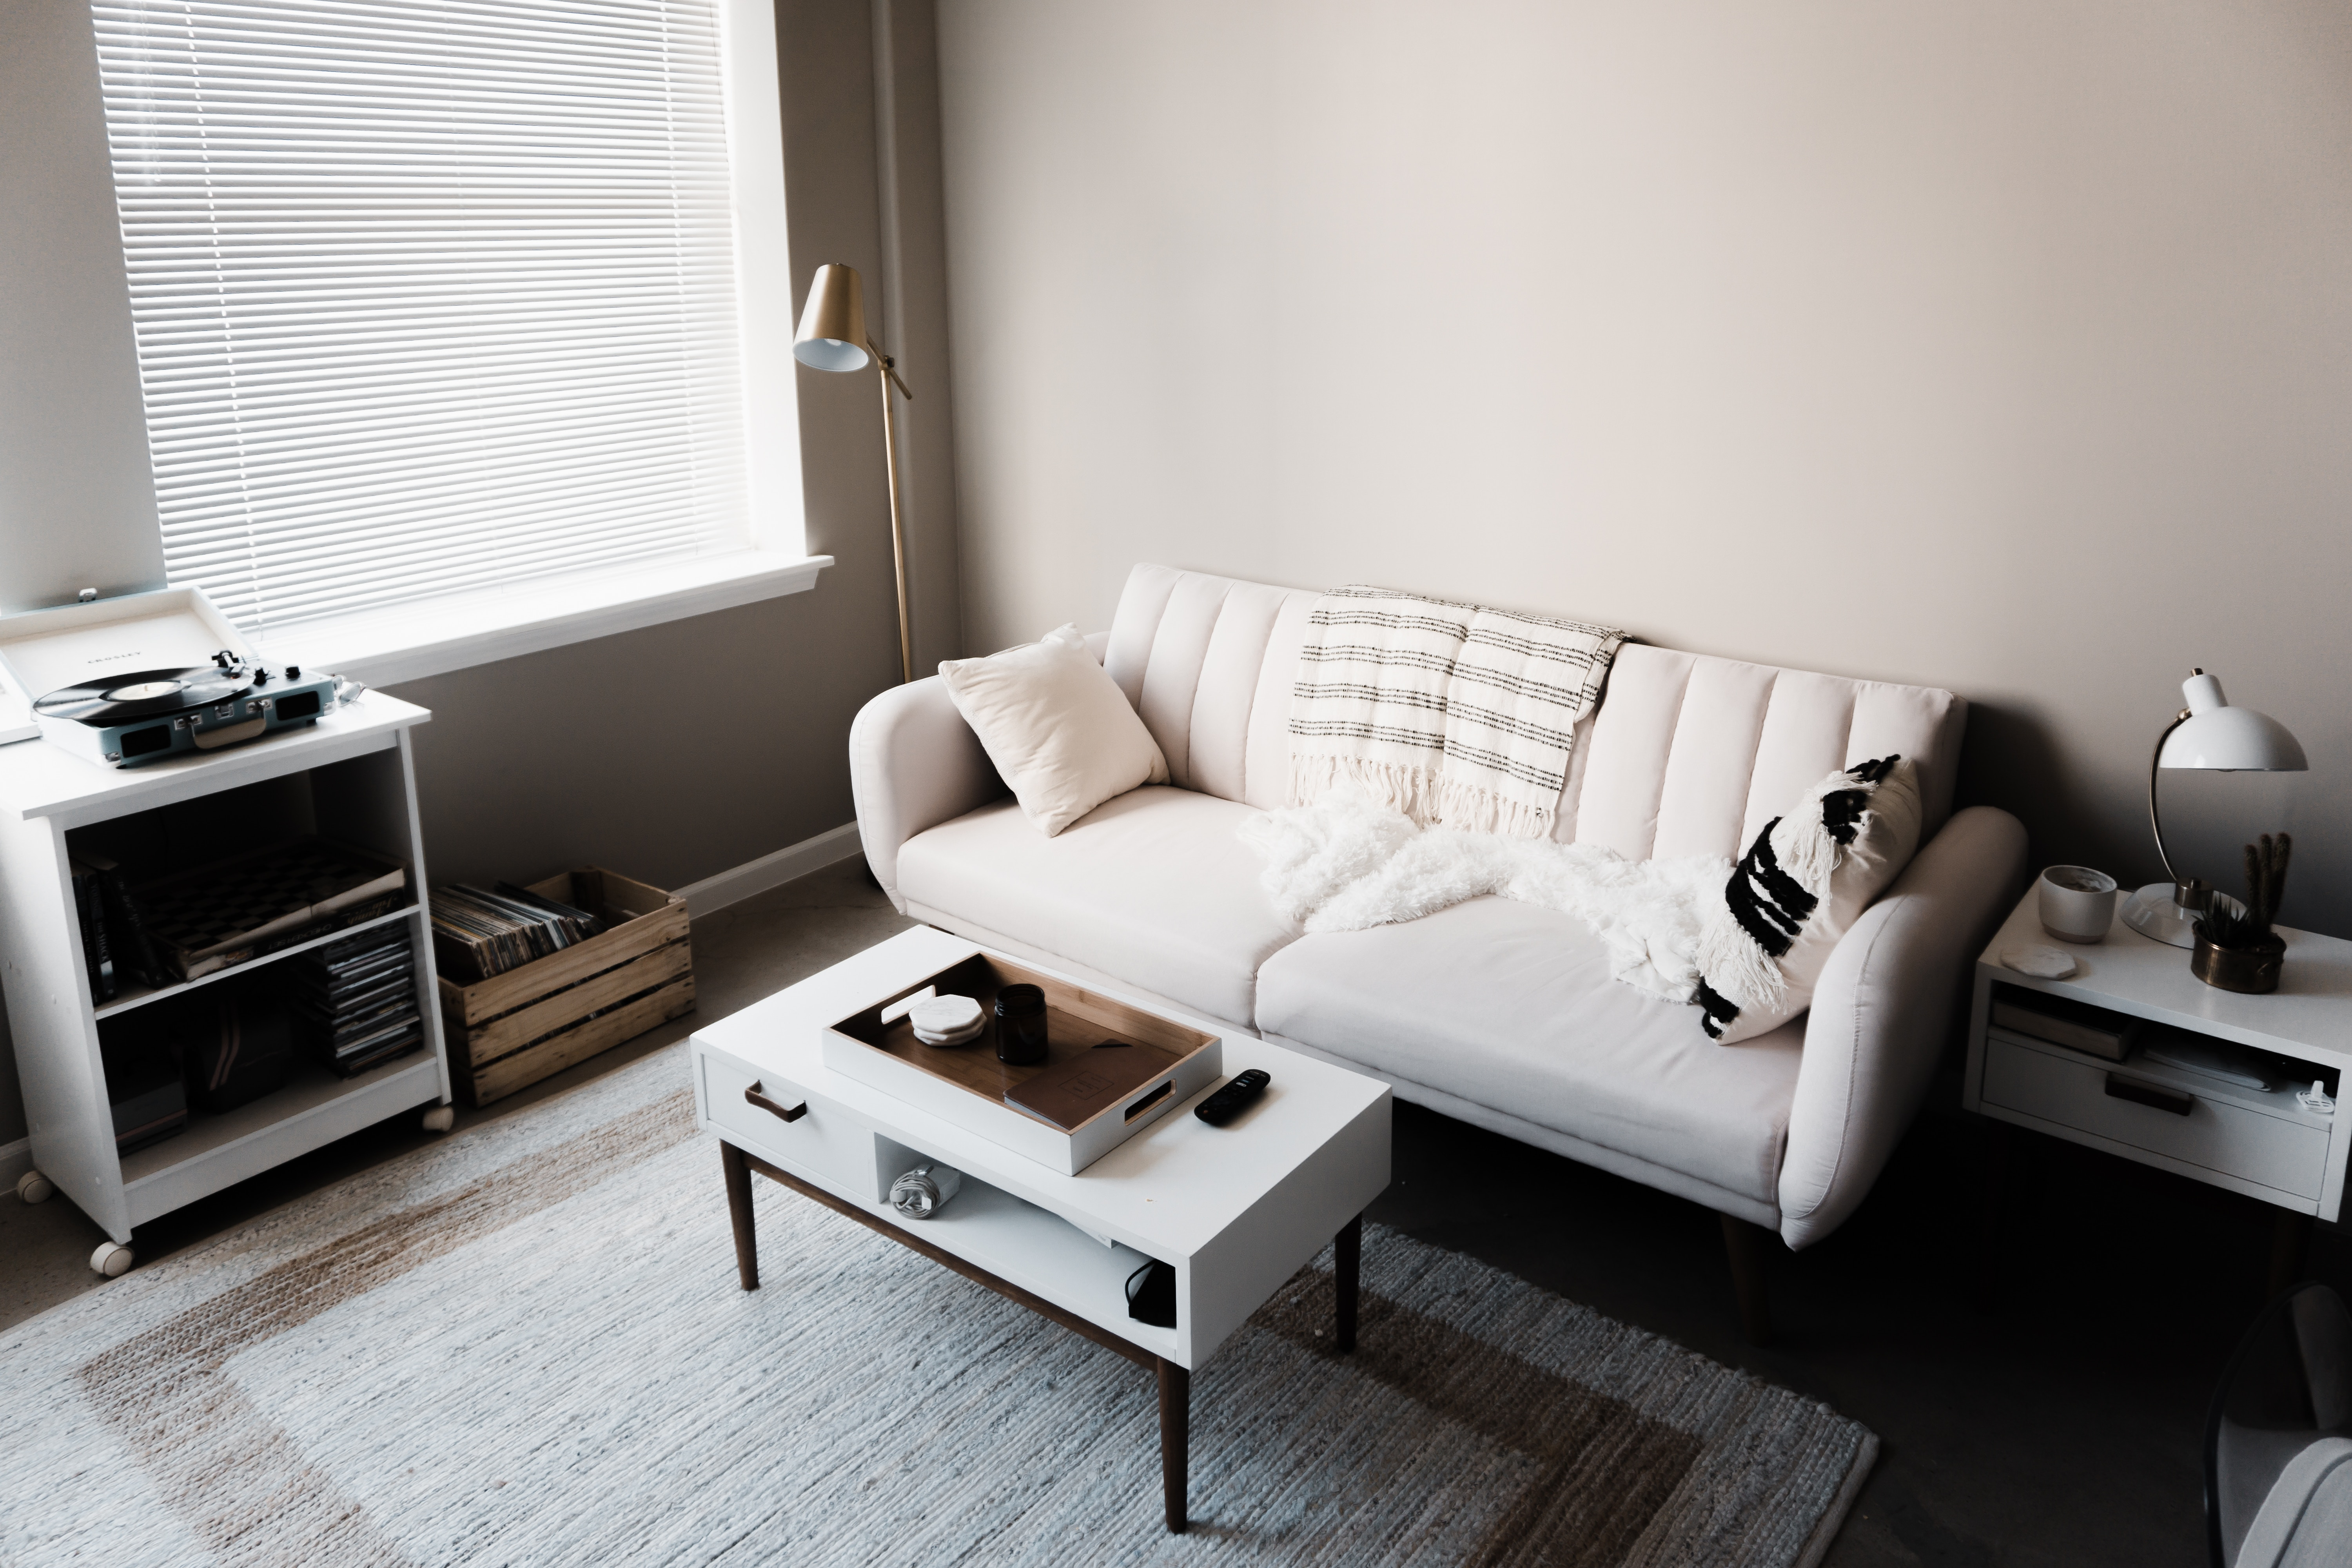 Inside main room of a home that has white walls and white furniture